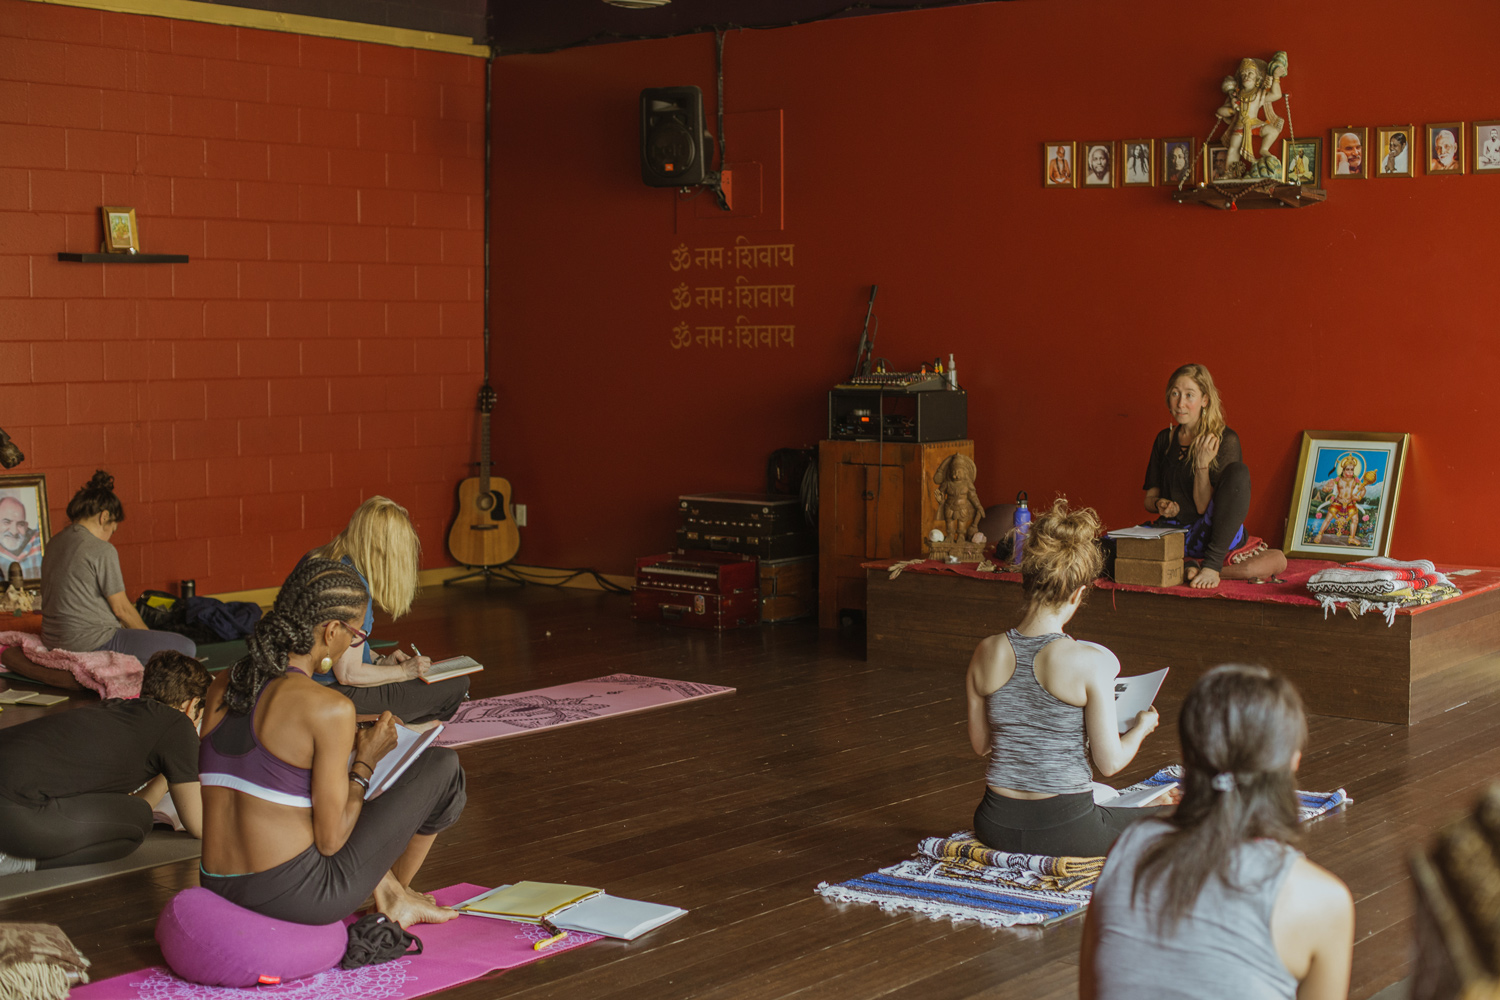 bhakti-2018-yin-yoga-teacher-training-8.jpg